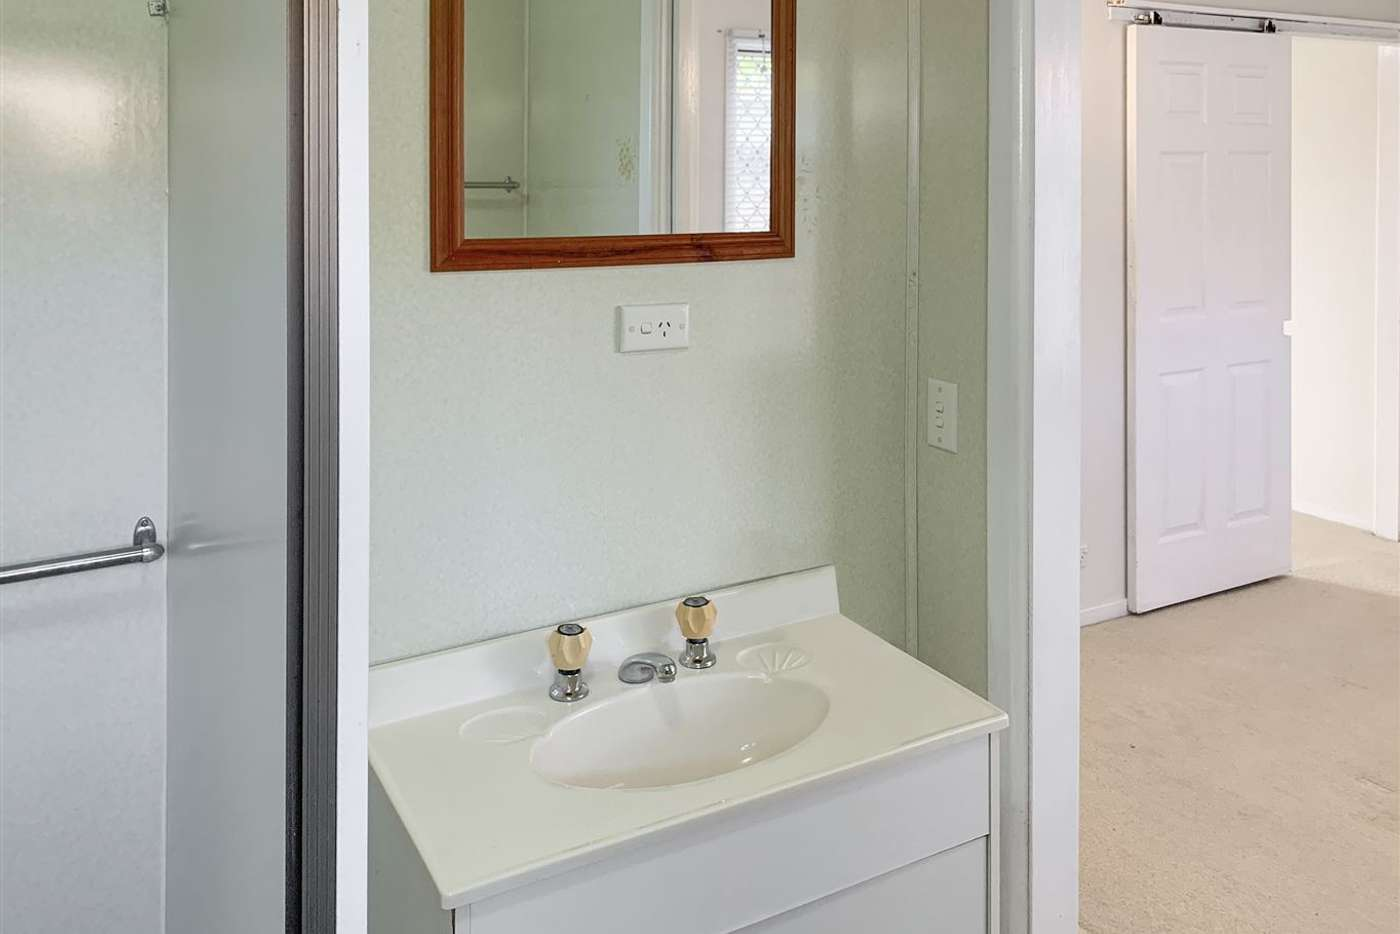 Sixth view of Homely flat listing, 70A Springwood Street (Deposit Taken in Just 2 Days), Ettalong Beach NSW 2257